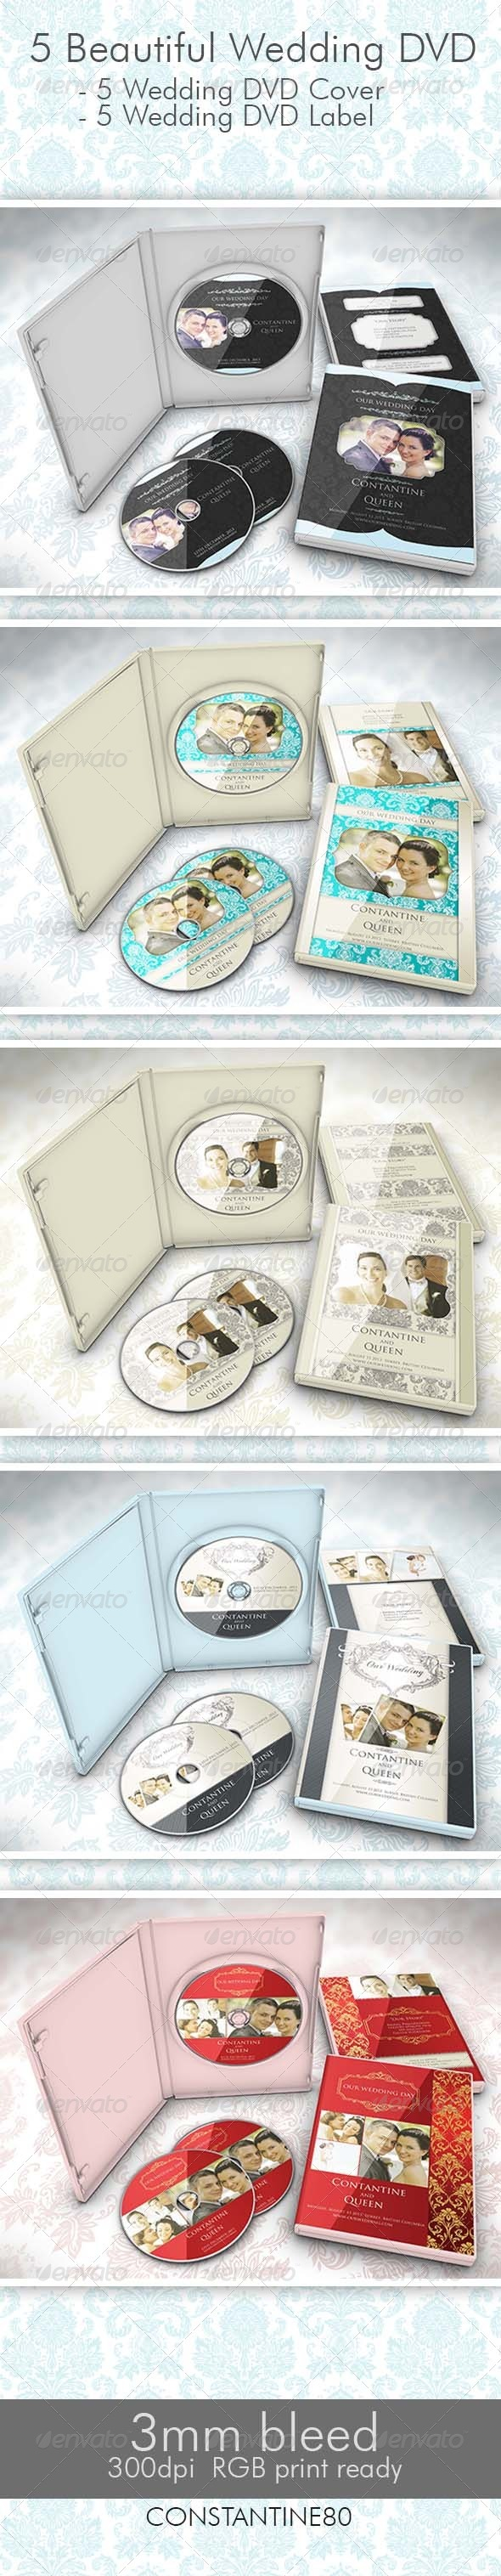 5 Beautiful Wedding DVD - CD & DVD Artwork Print Templates